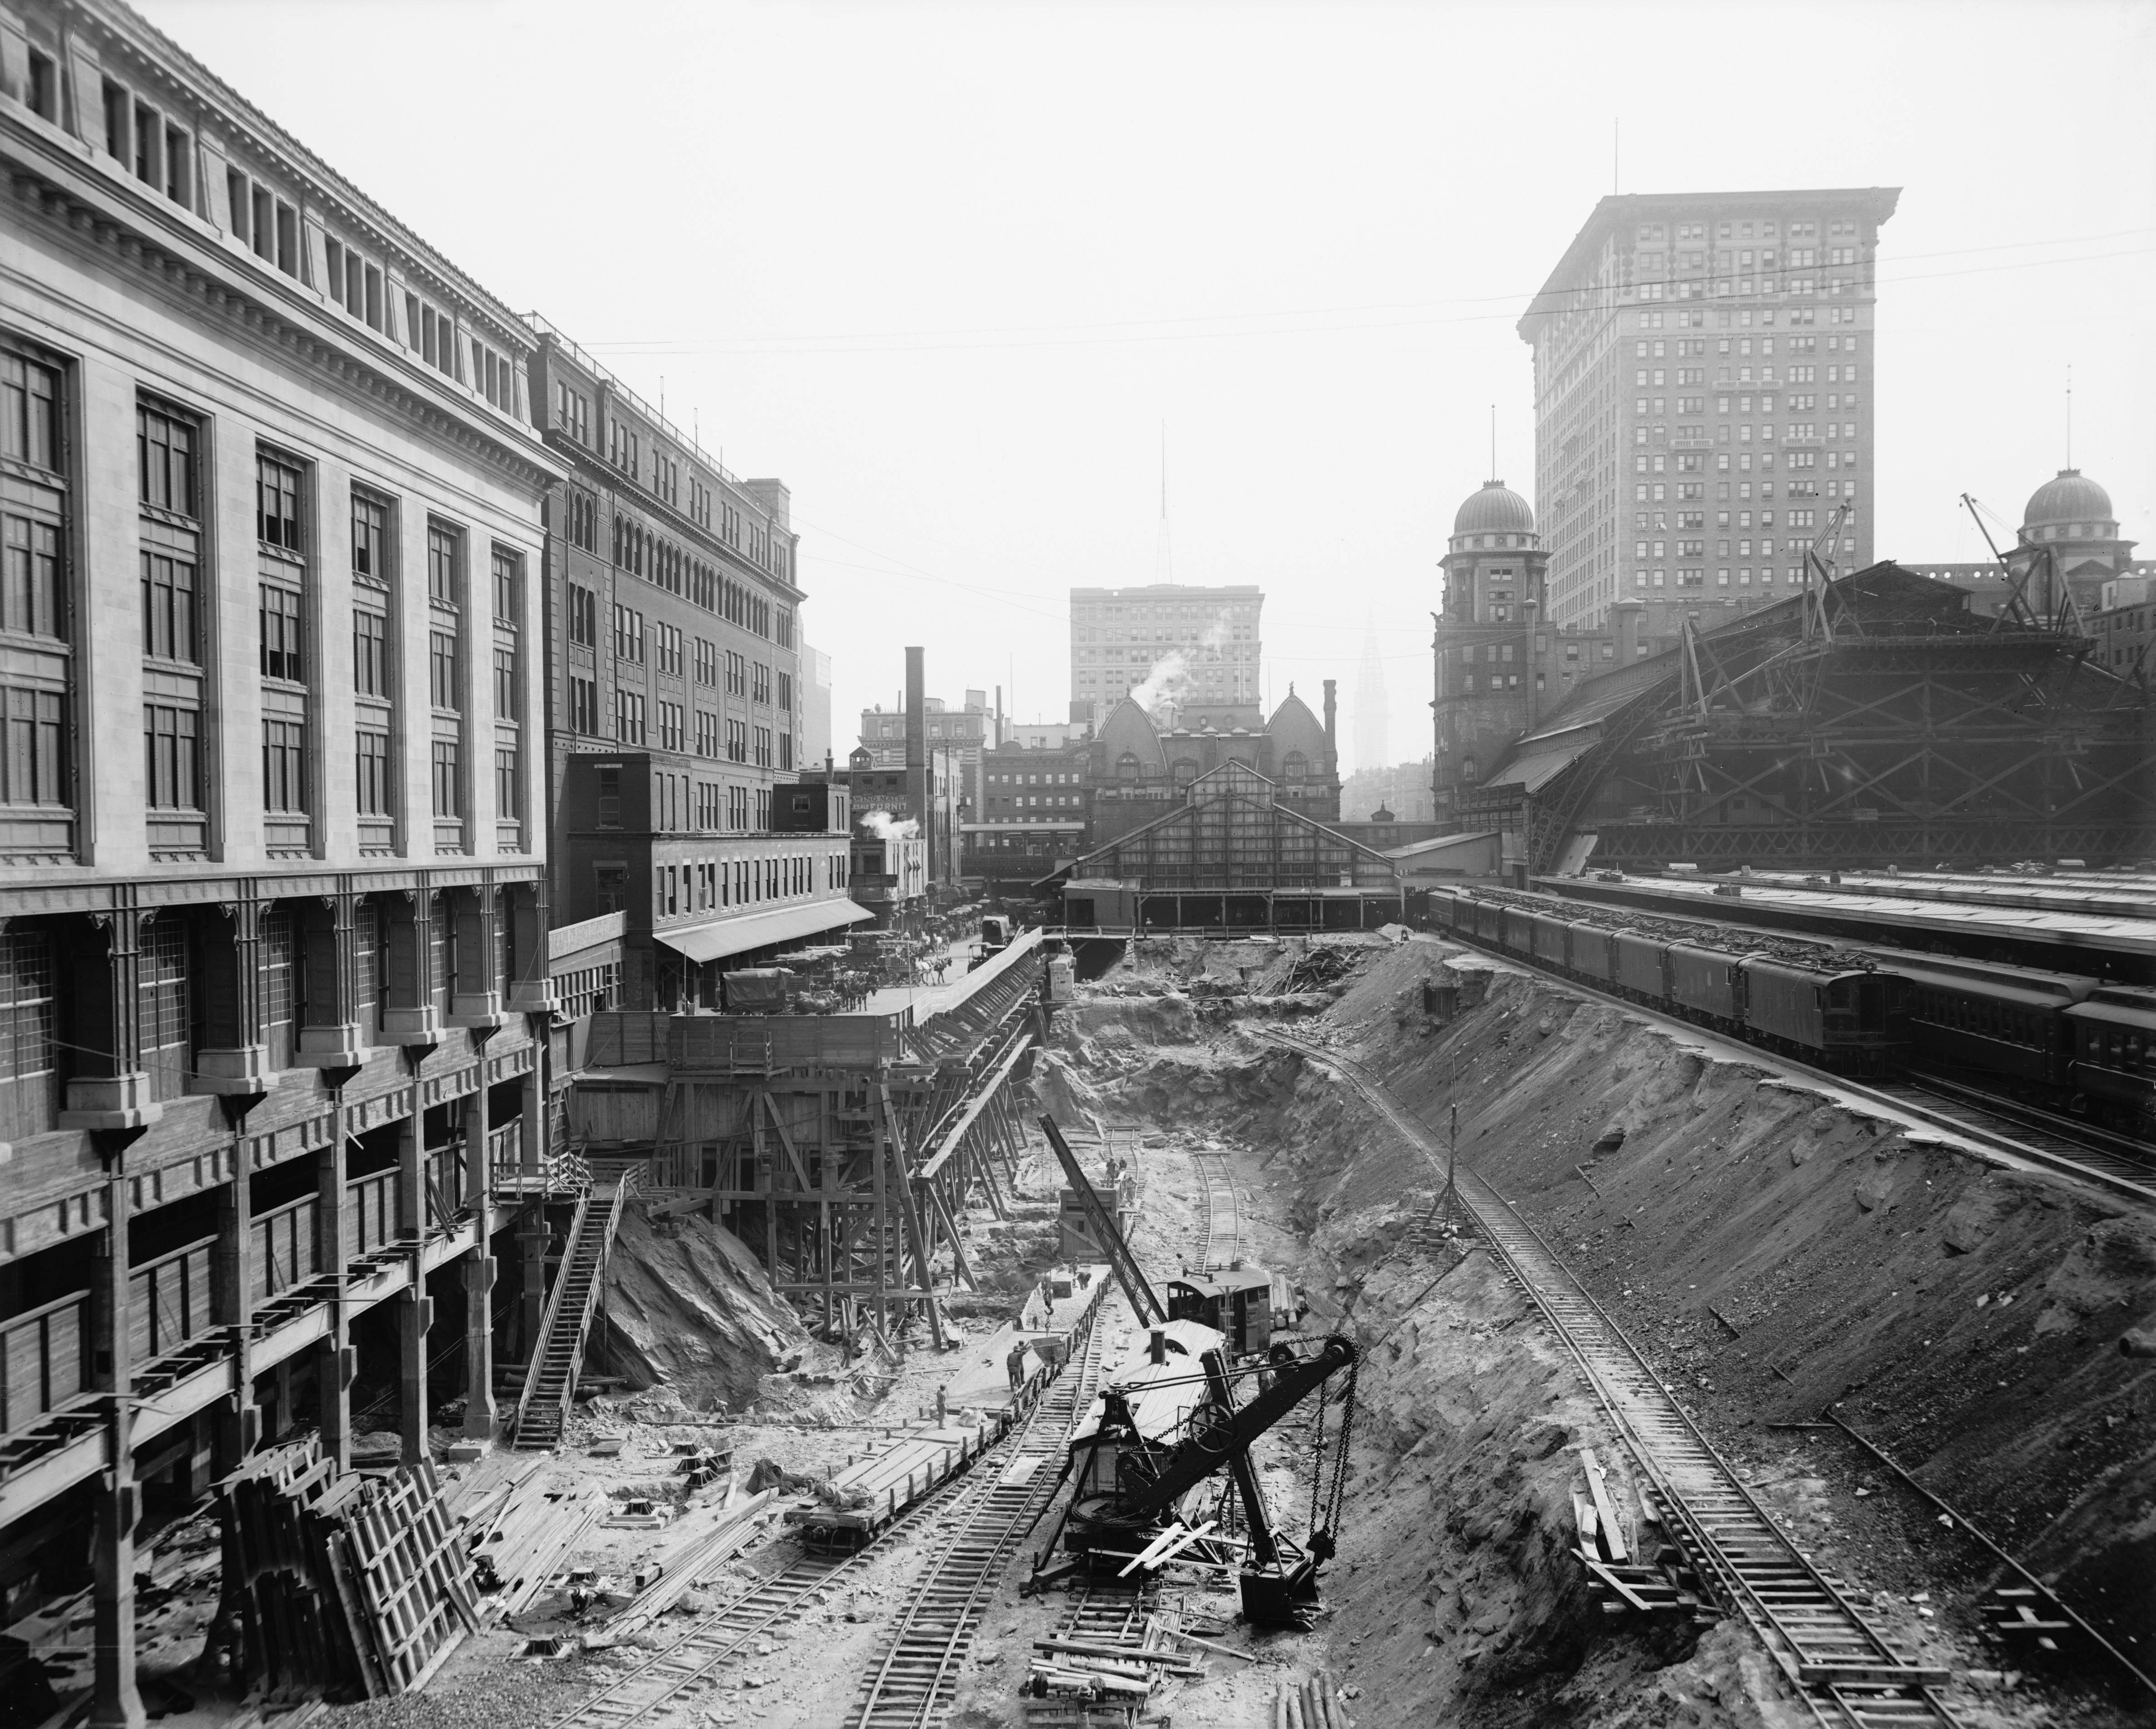 Excavation of the Grand Central Terminal, circa 1908.